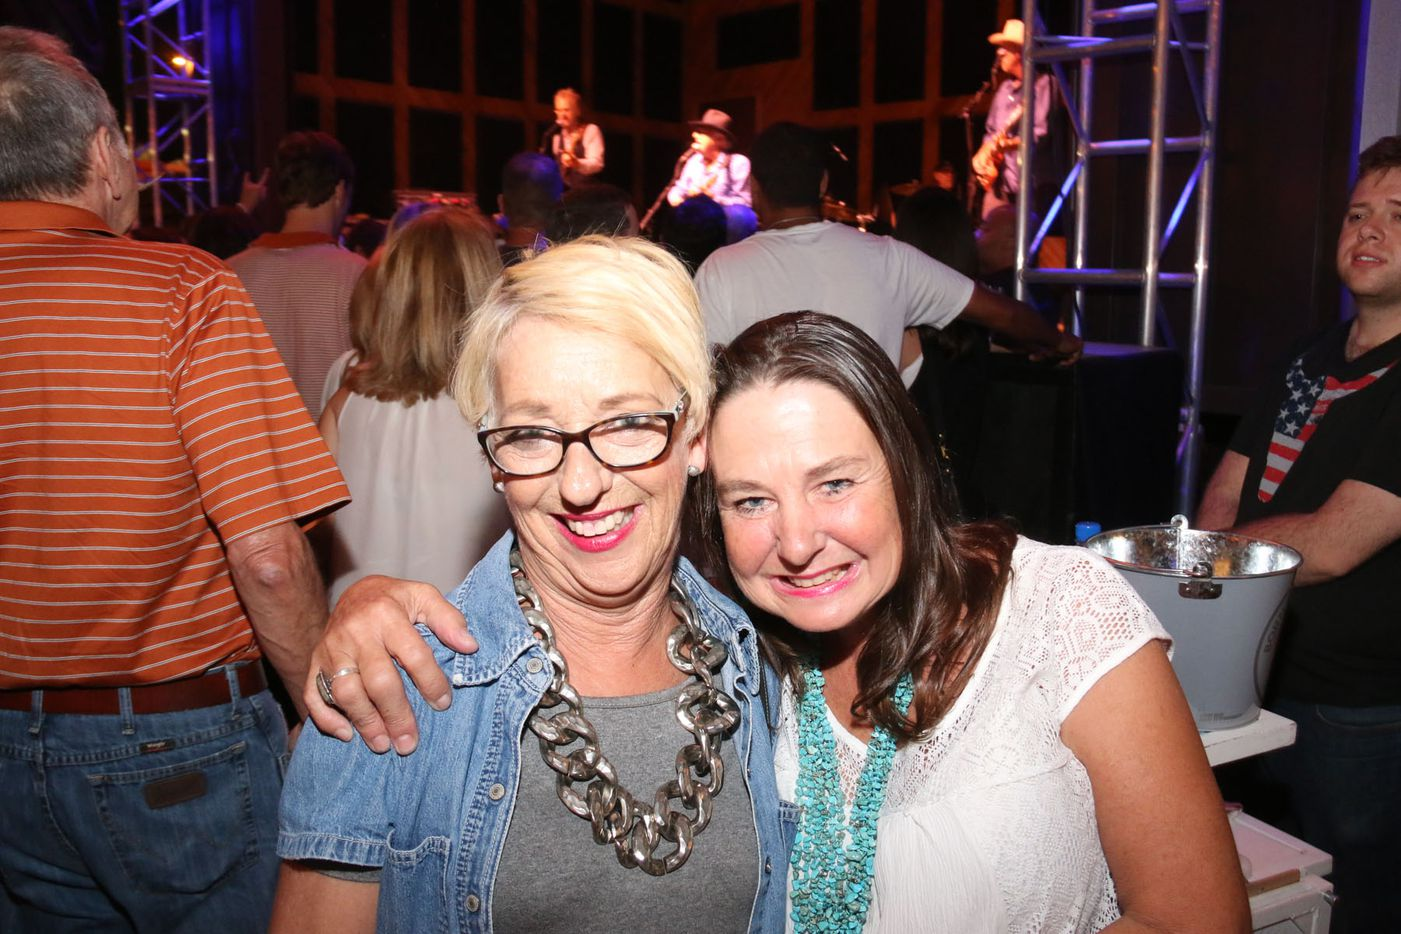 Jerry Jeff Walker fans came to see him perform at The Rustic in Uptown on October 9, 2015.